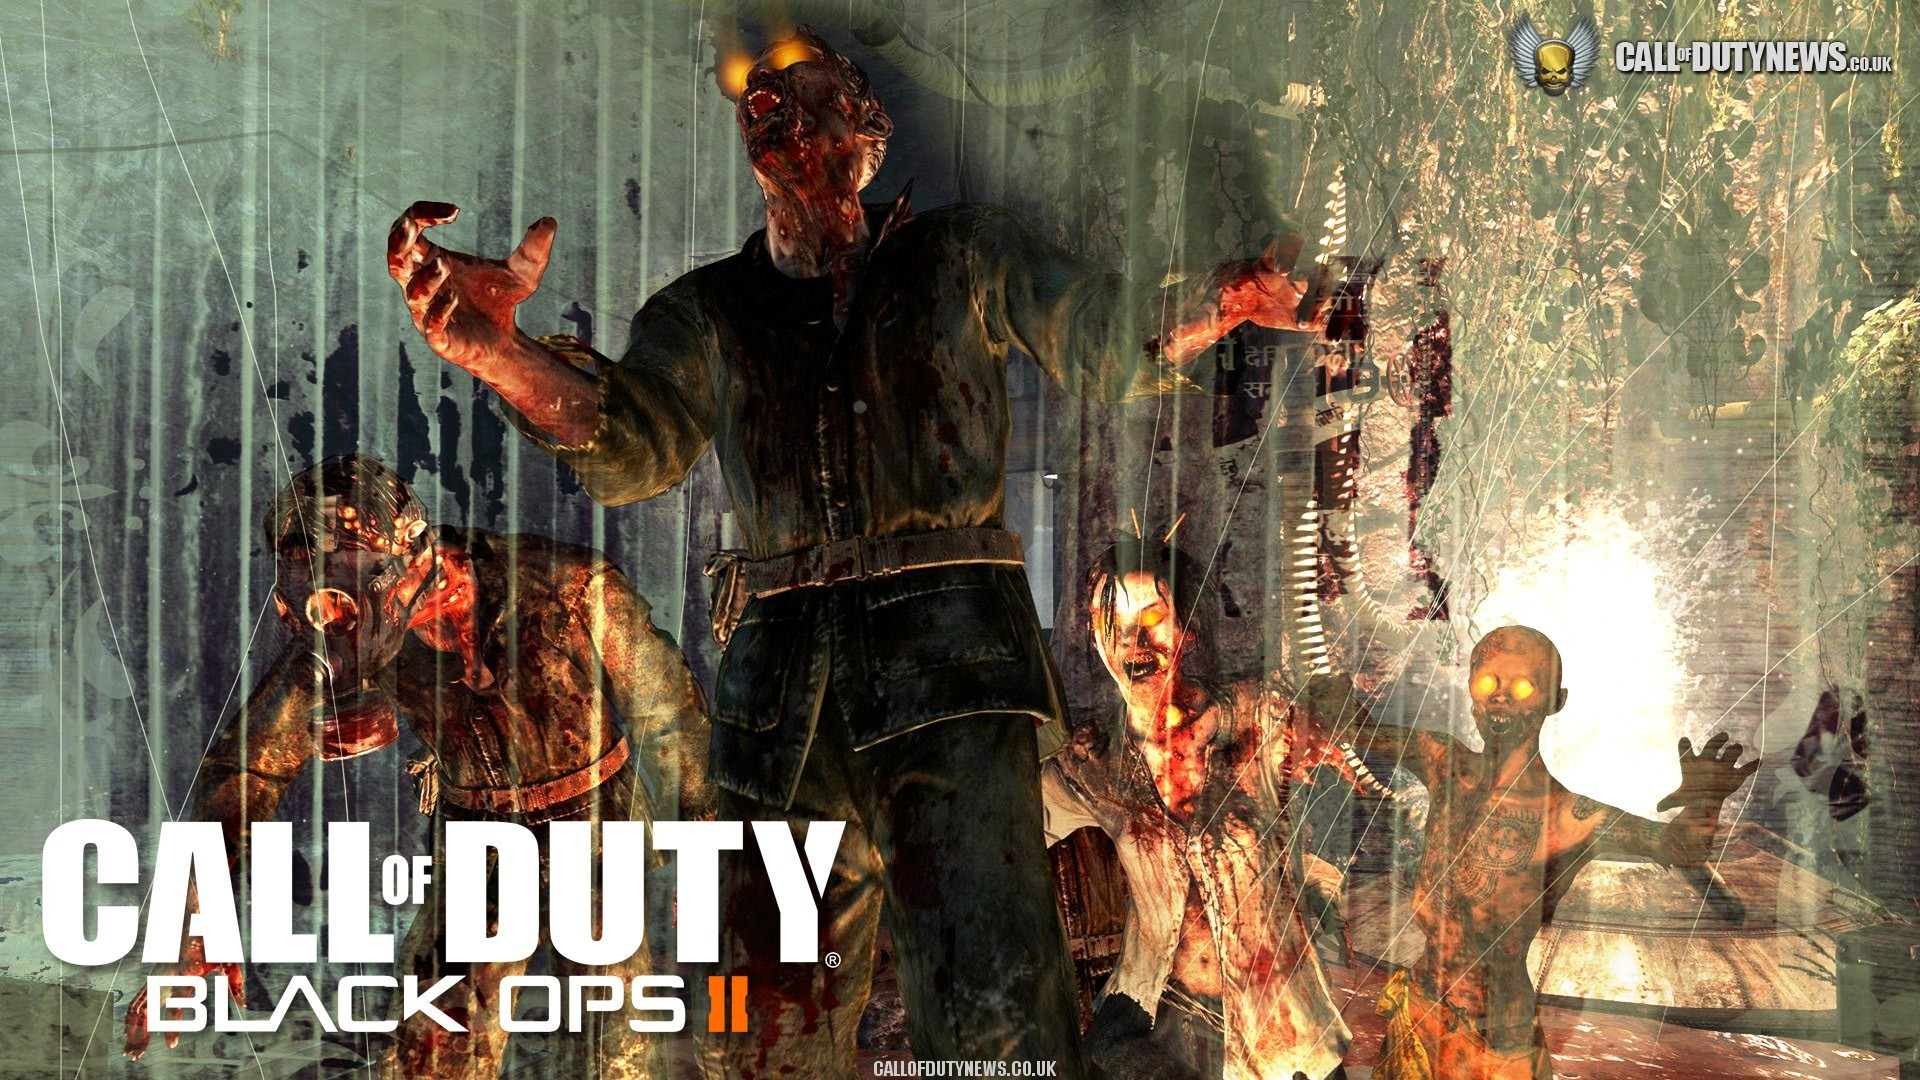 Call Of Duty Zombies Wallpapers: Cod Zombies Wallpapers (71+ Images